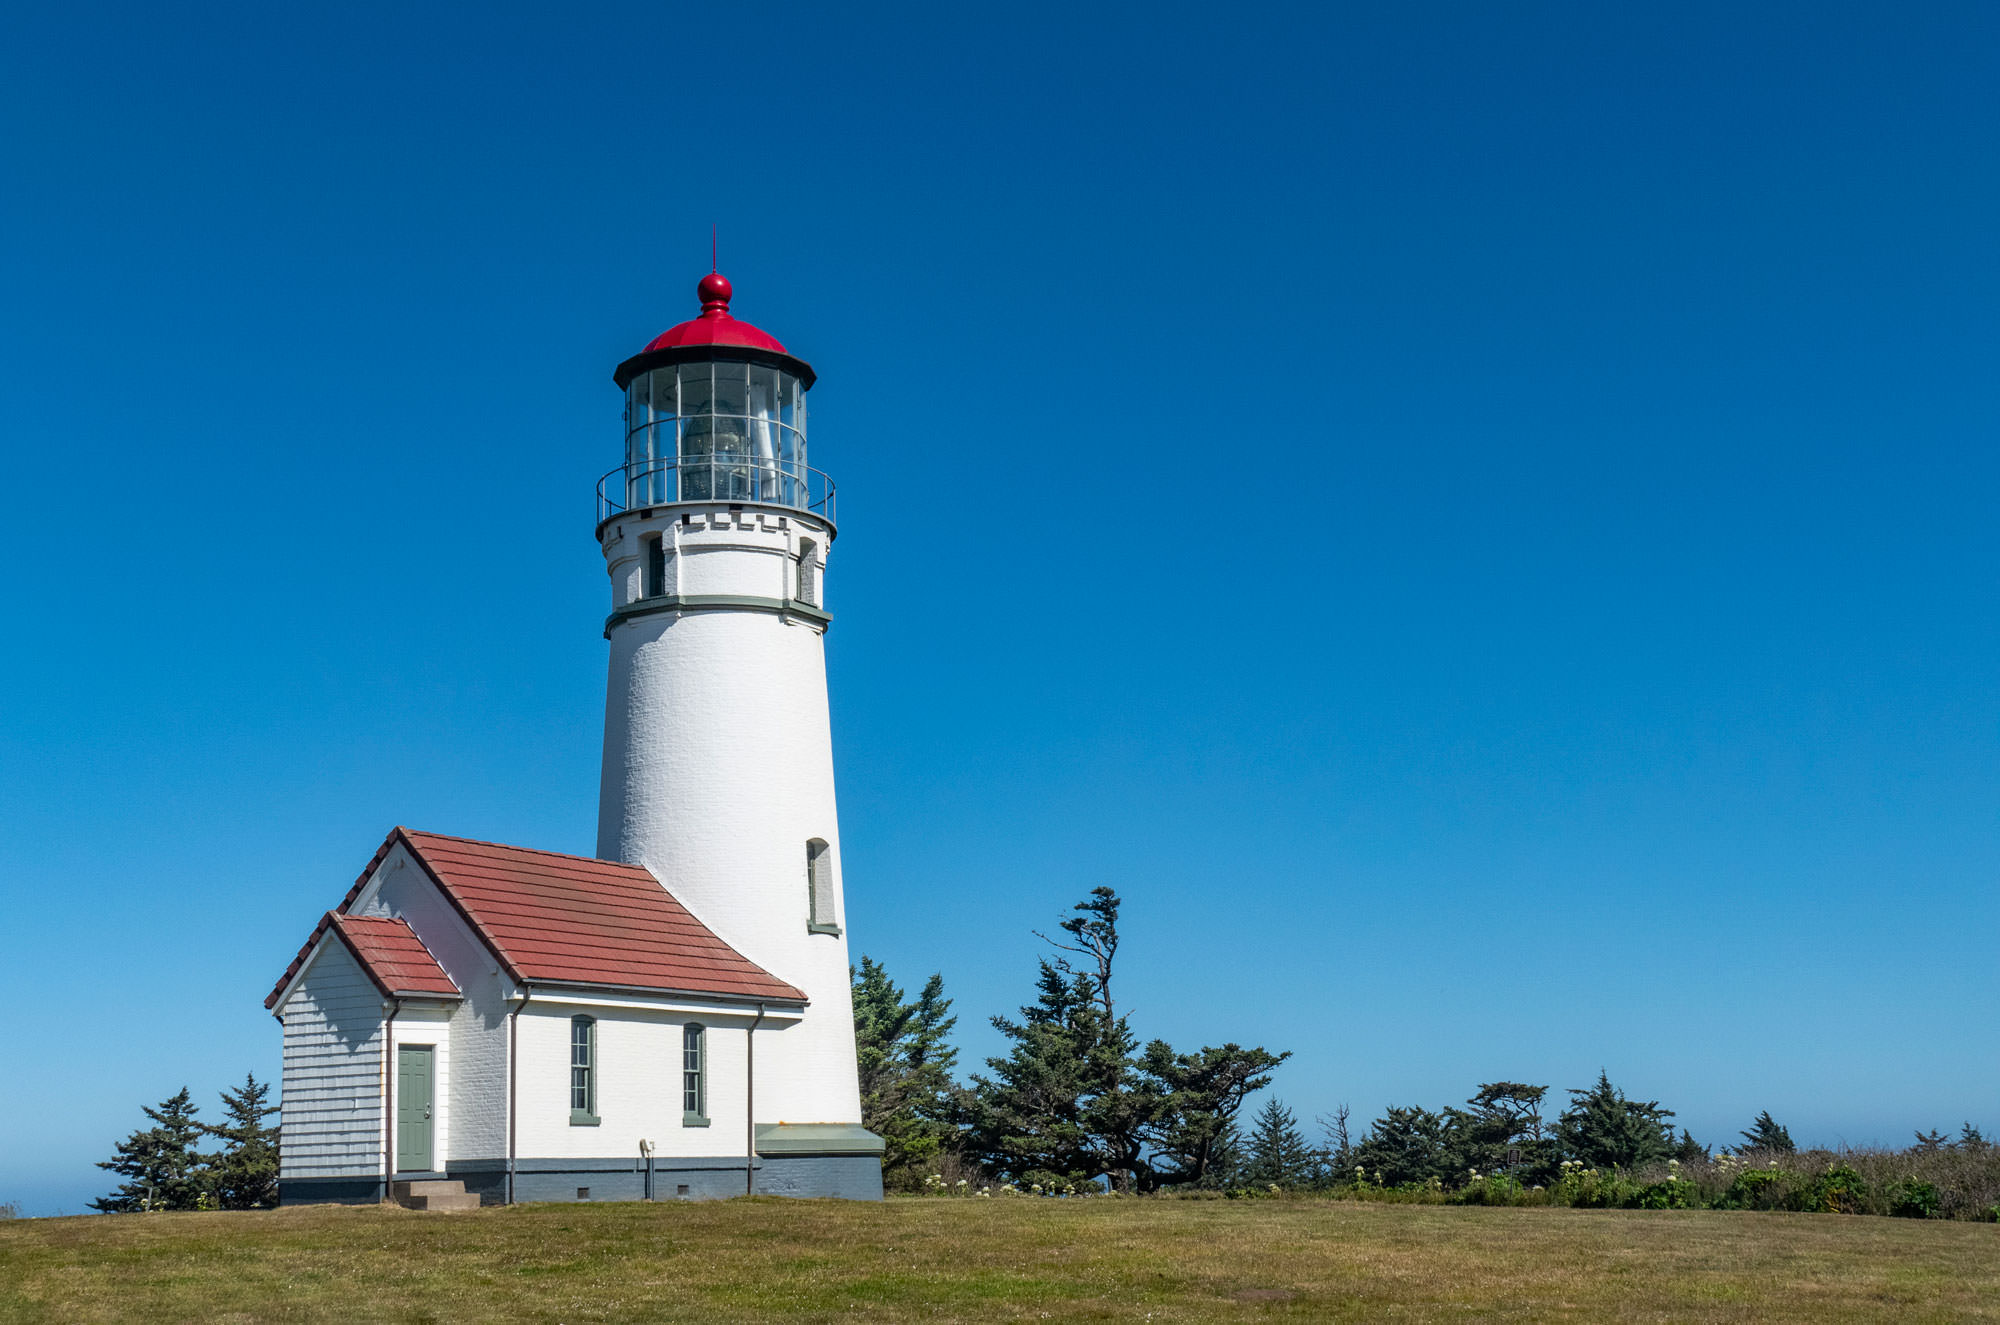 Blue skies surround the Cape Blanco lighthouse.